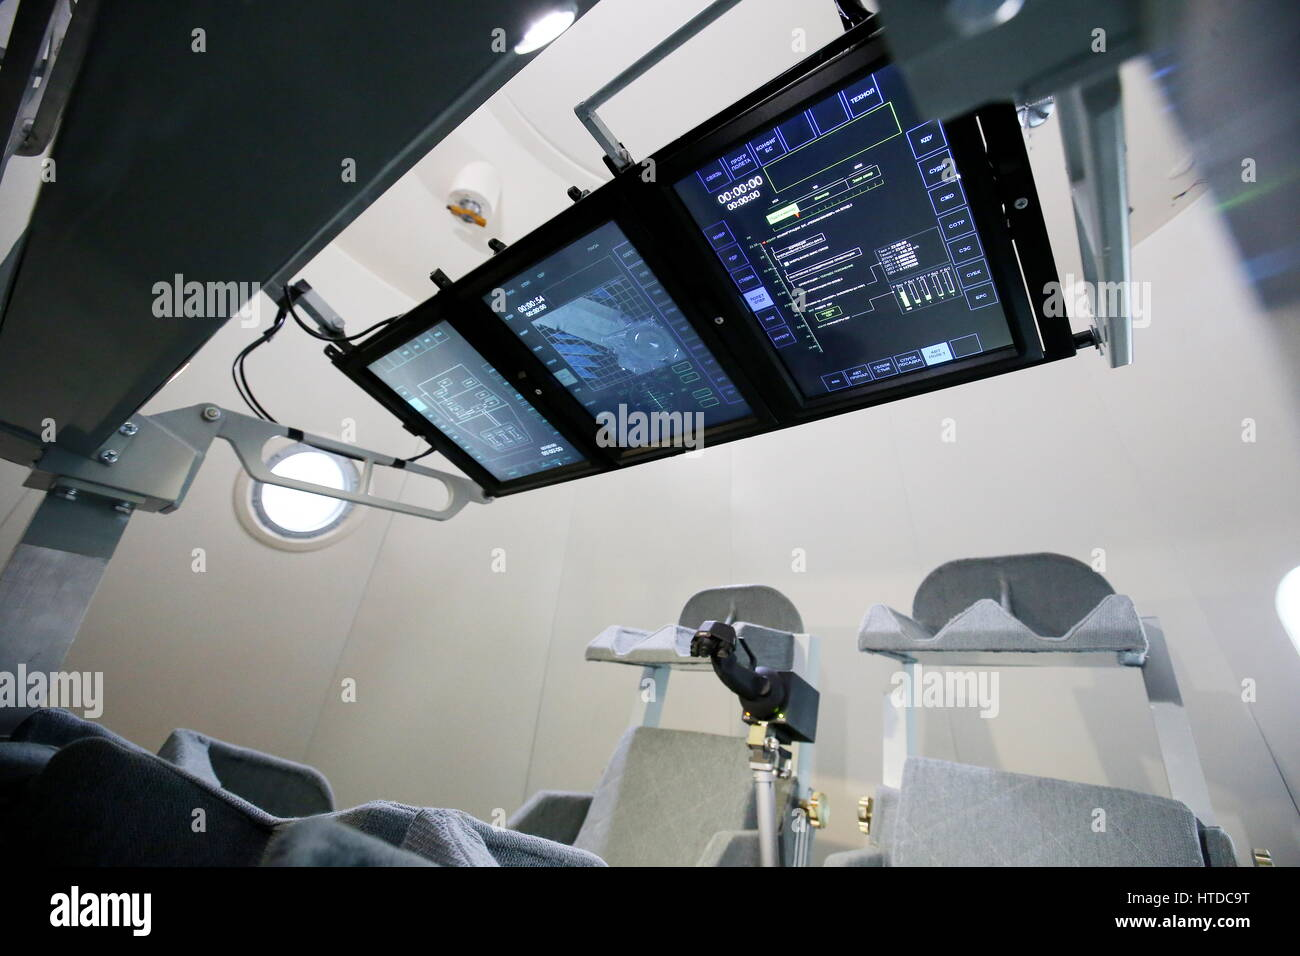 Moscow Region, Russia. 10th Mar, 2017. Screens inside a mock-up of the next-generation manned spacecraft Federation - Stock Image